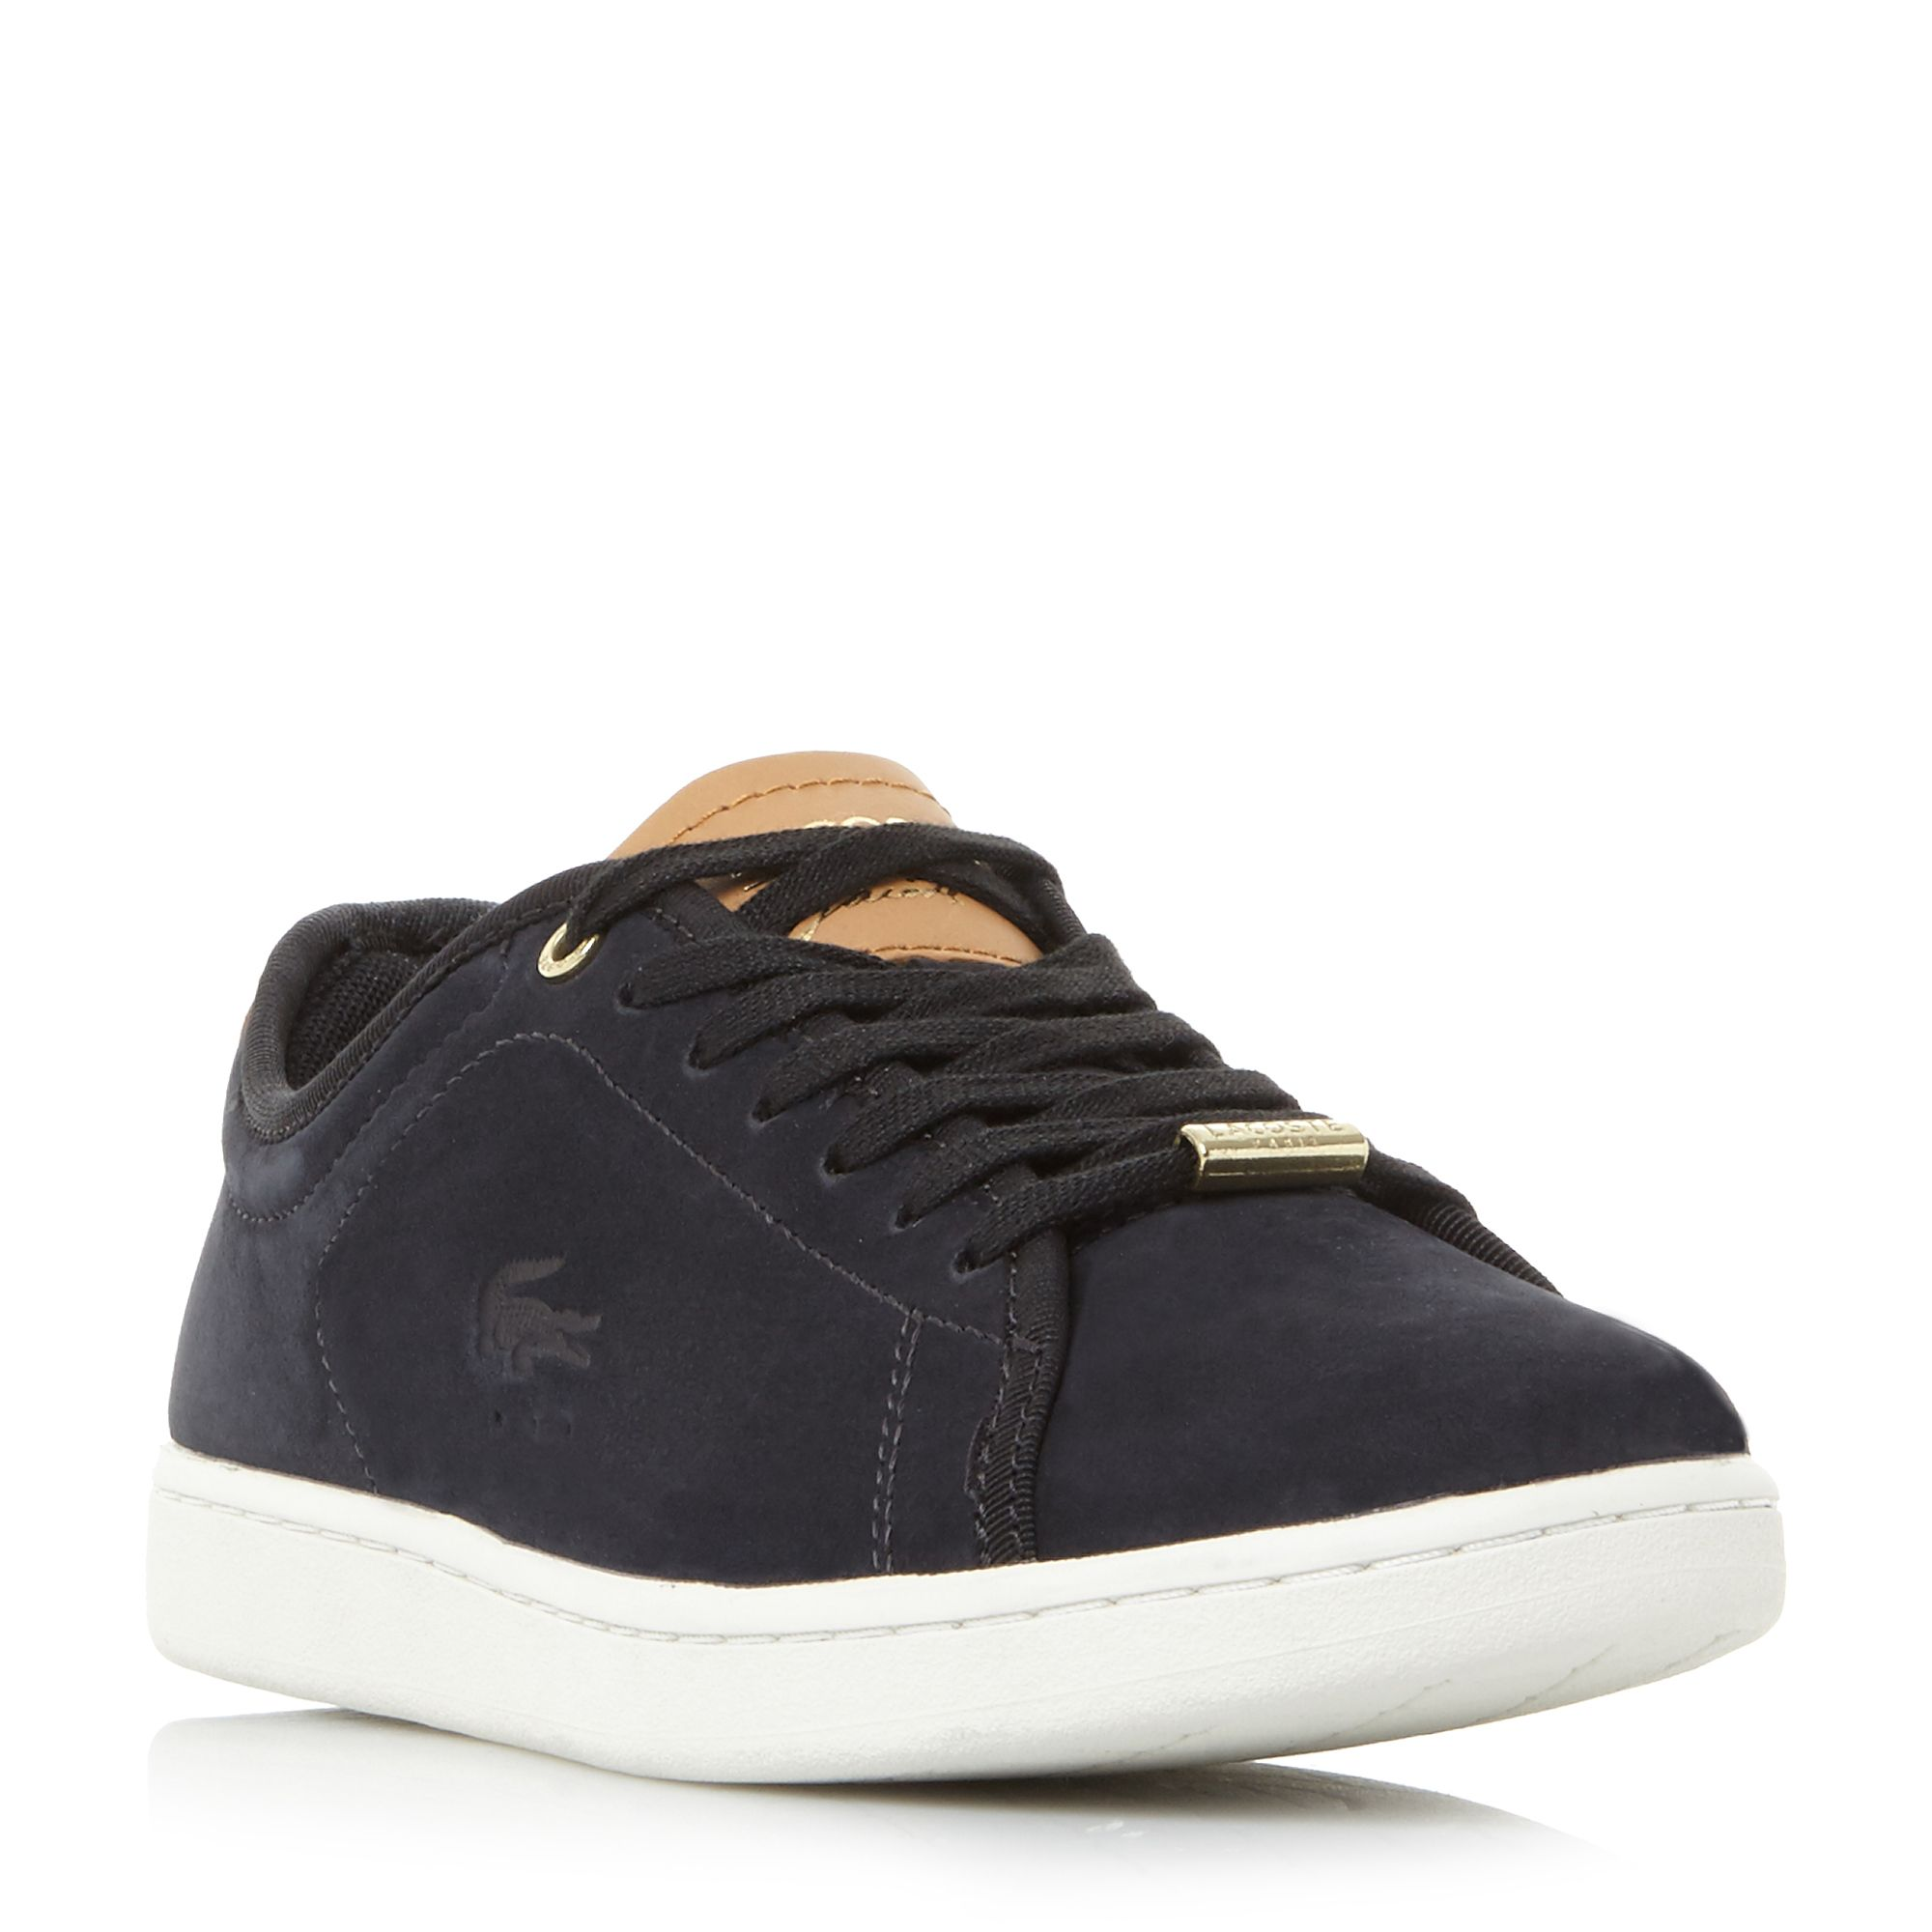 Lacoste Carnaby Evo Gold Detail Trainers, Black